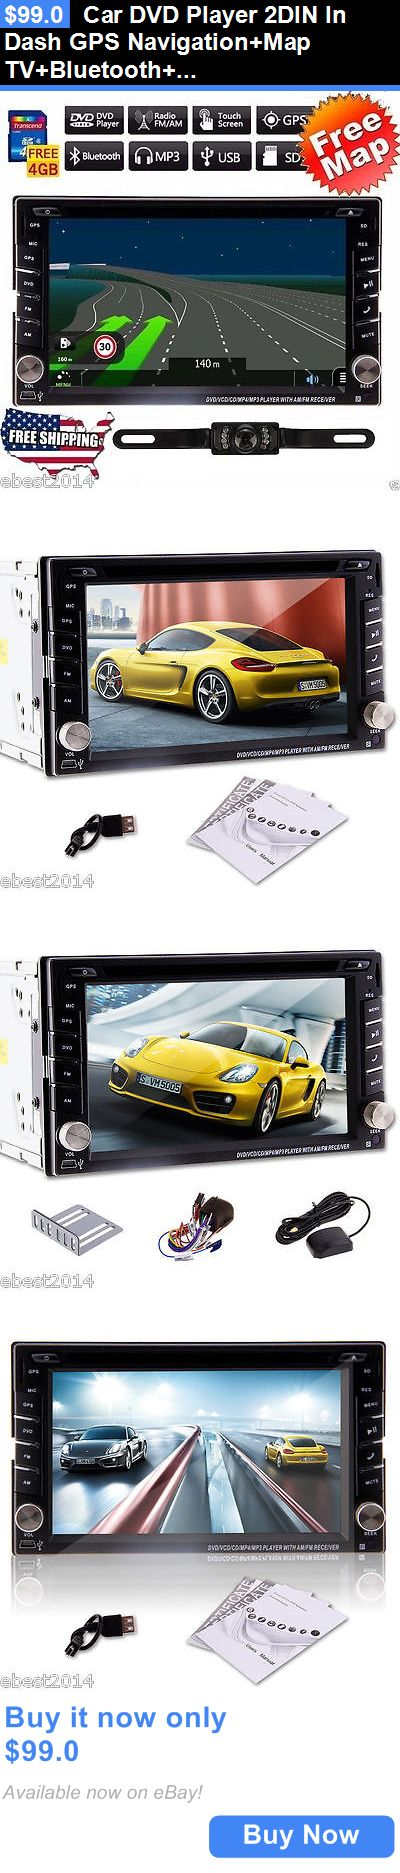 Vehicle Electronics And GPS: Car Dvd Player 2Din In Dash Gps Navigation+Map Tv+Bluetooth+Radio Stereo+Camera BUY IT NOW ONLY: $99.0